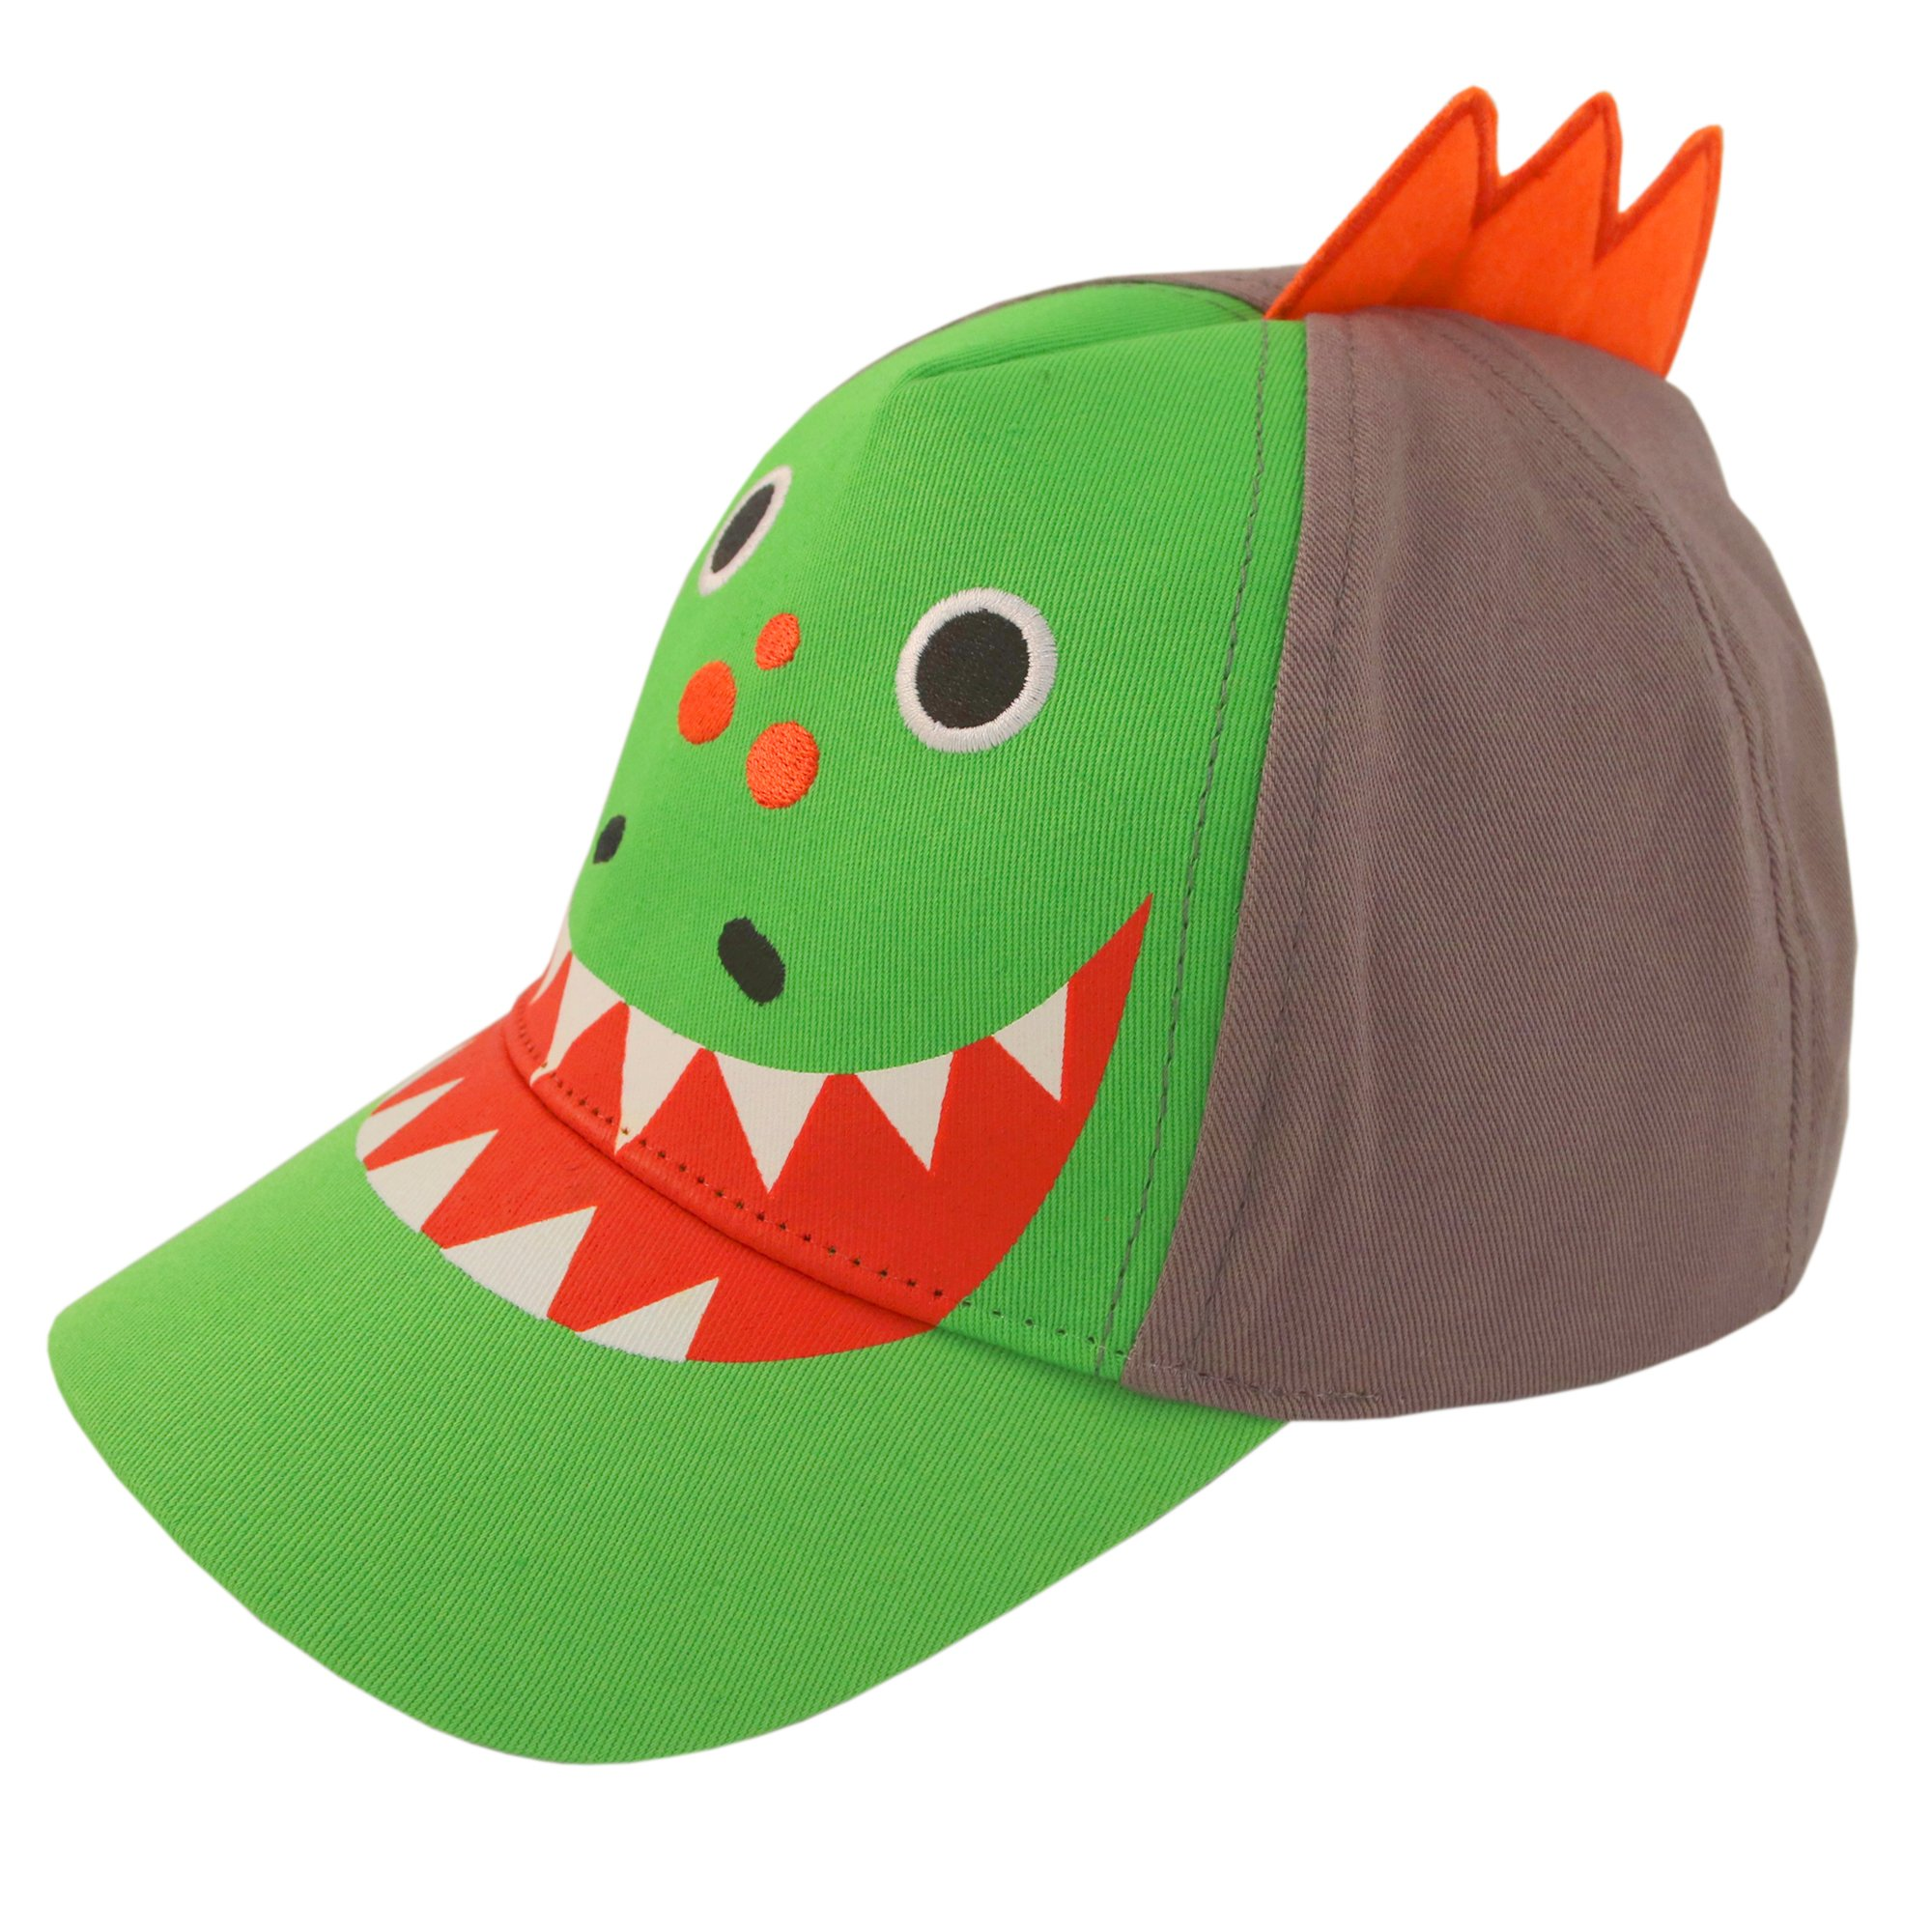 ABG Accessories Toddler Boys Cotton Baseball Cap with Assorted Animal Critter Designs, Age 2-4 (Dinosaur Design – Green/Grey) by ABG Accessories (Image #1)